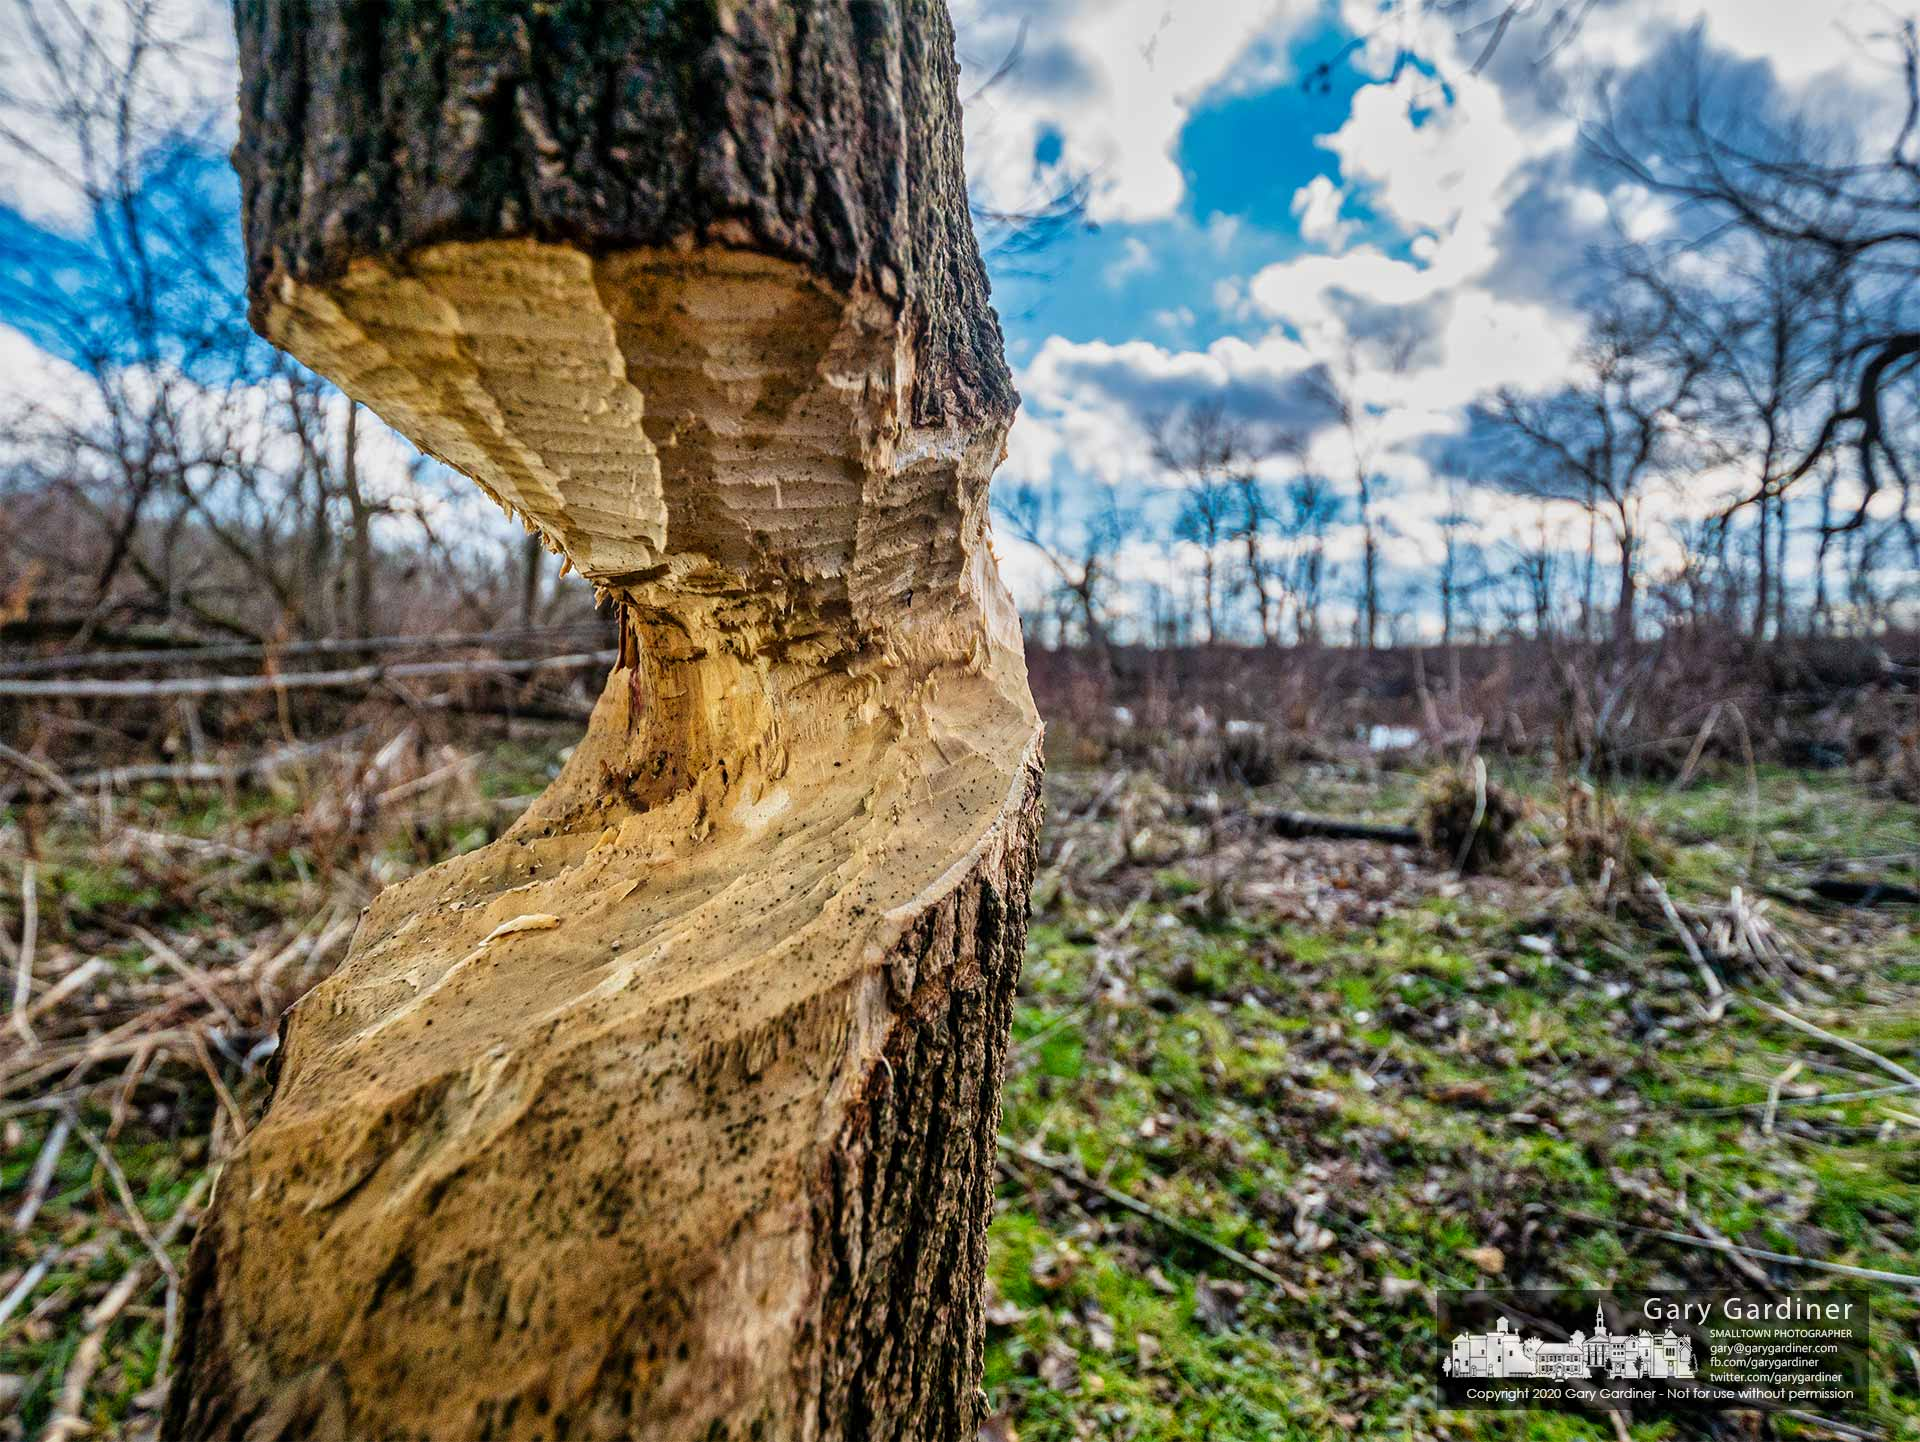 A tree at Alum Creek North bears the destructive scars of a beaver's overnight work cutting timber to build a lodge along the creek in Westerville. My Final Photo for Jan. 15, 2021.